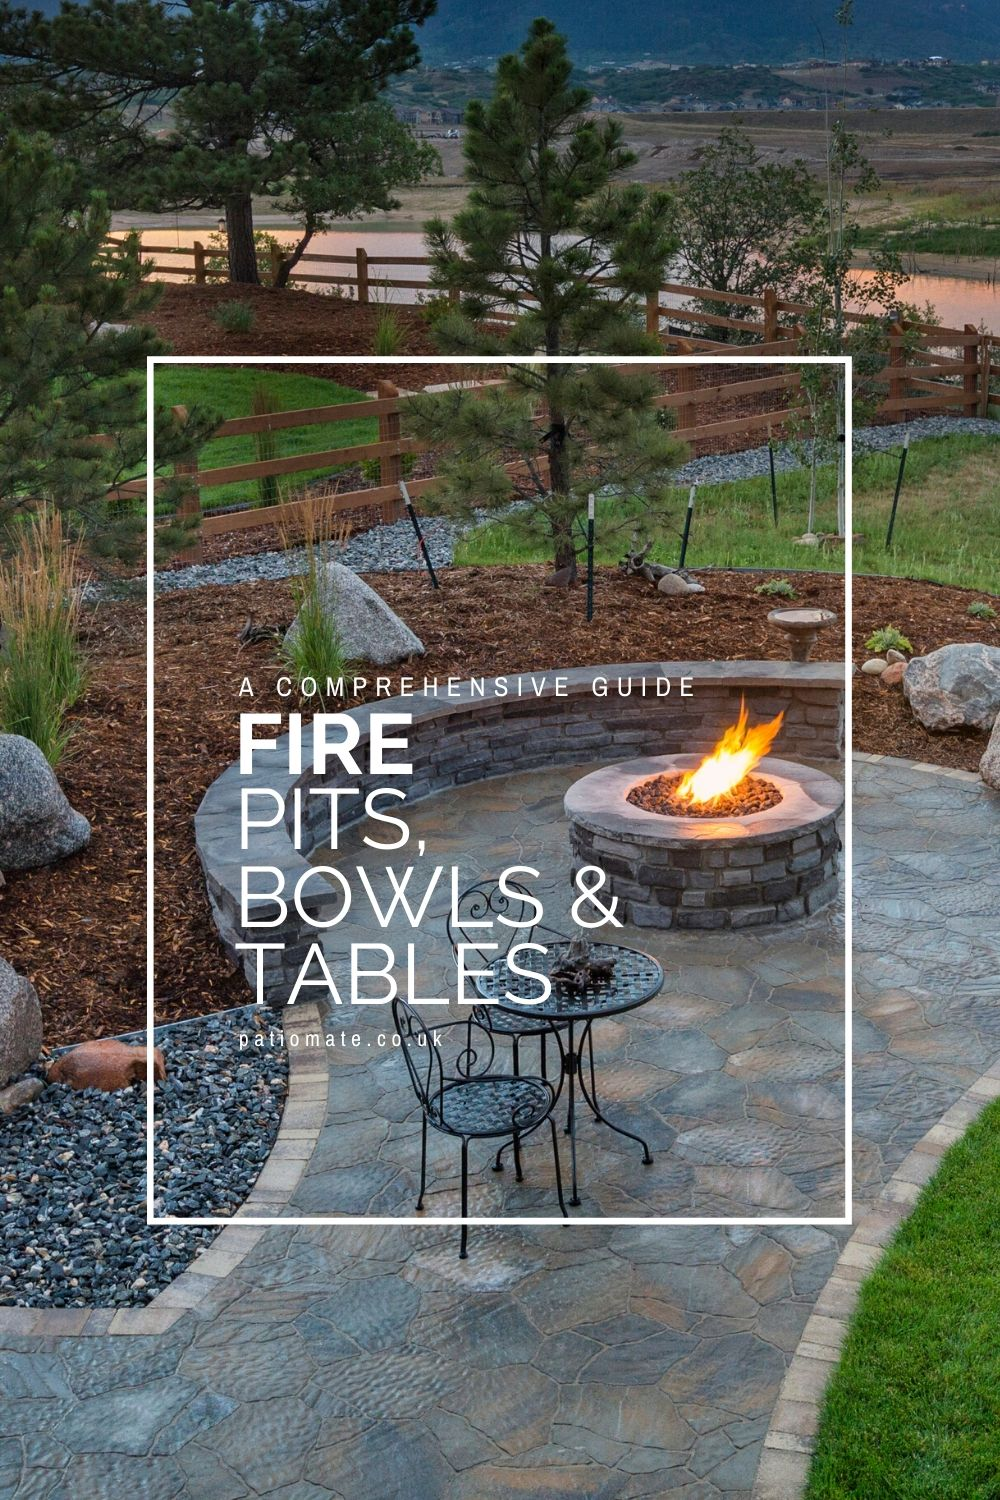 fire pits bowls table comprehensive guide 2